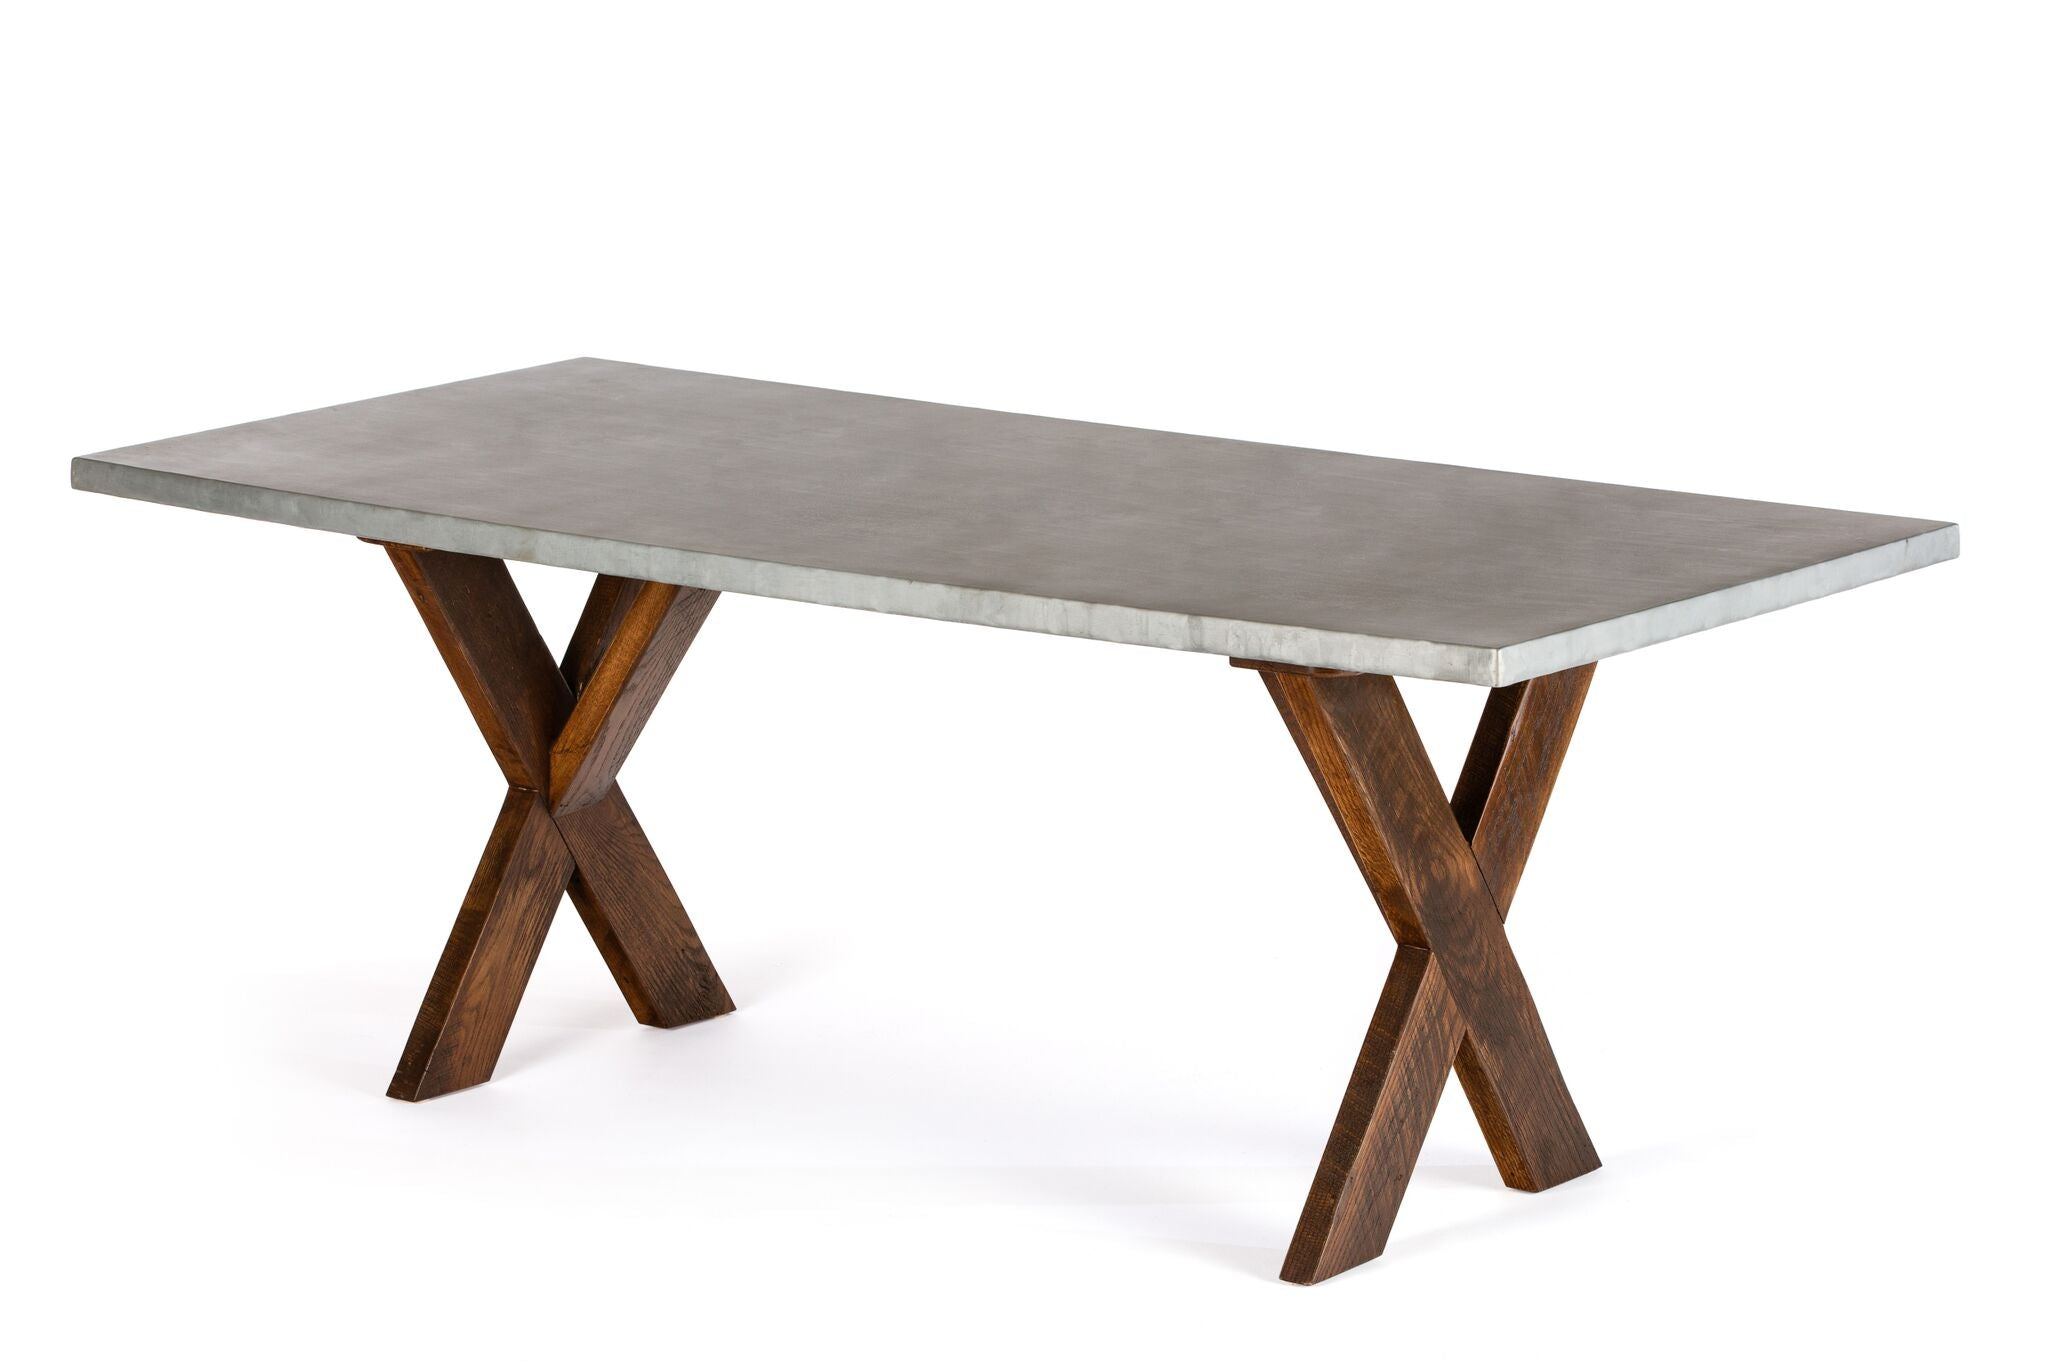 "Zinc Rectangular Table | X Base Trestle Table | CLASSIC | Americana on Reclaimed Oak | CUSTOM SIZE 56""L 38""W 30""H 